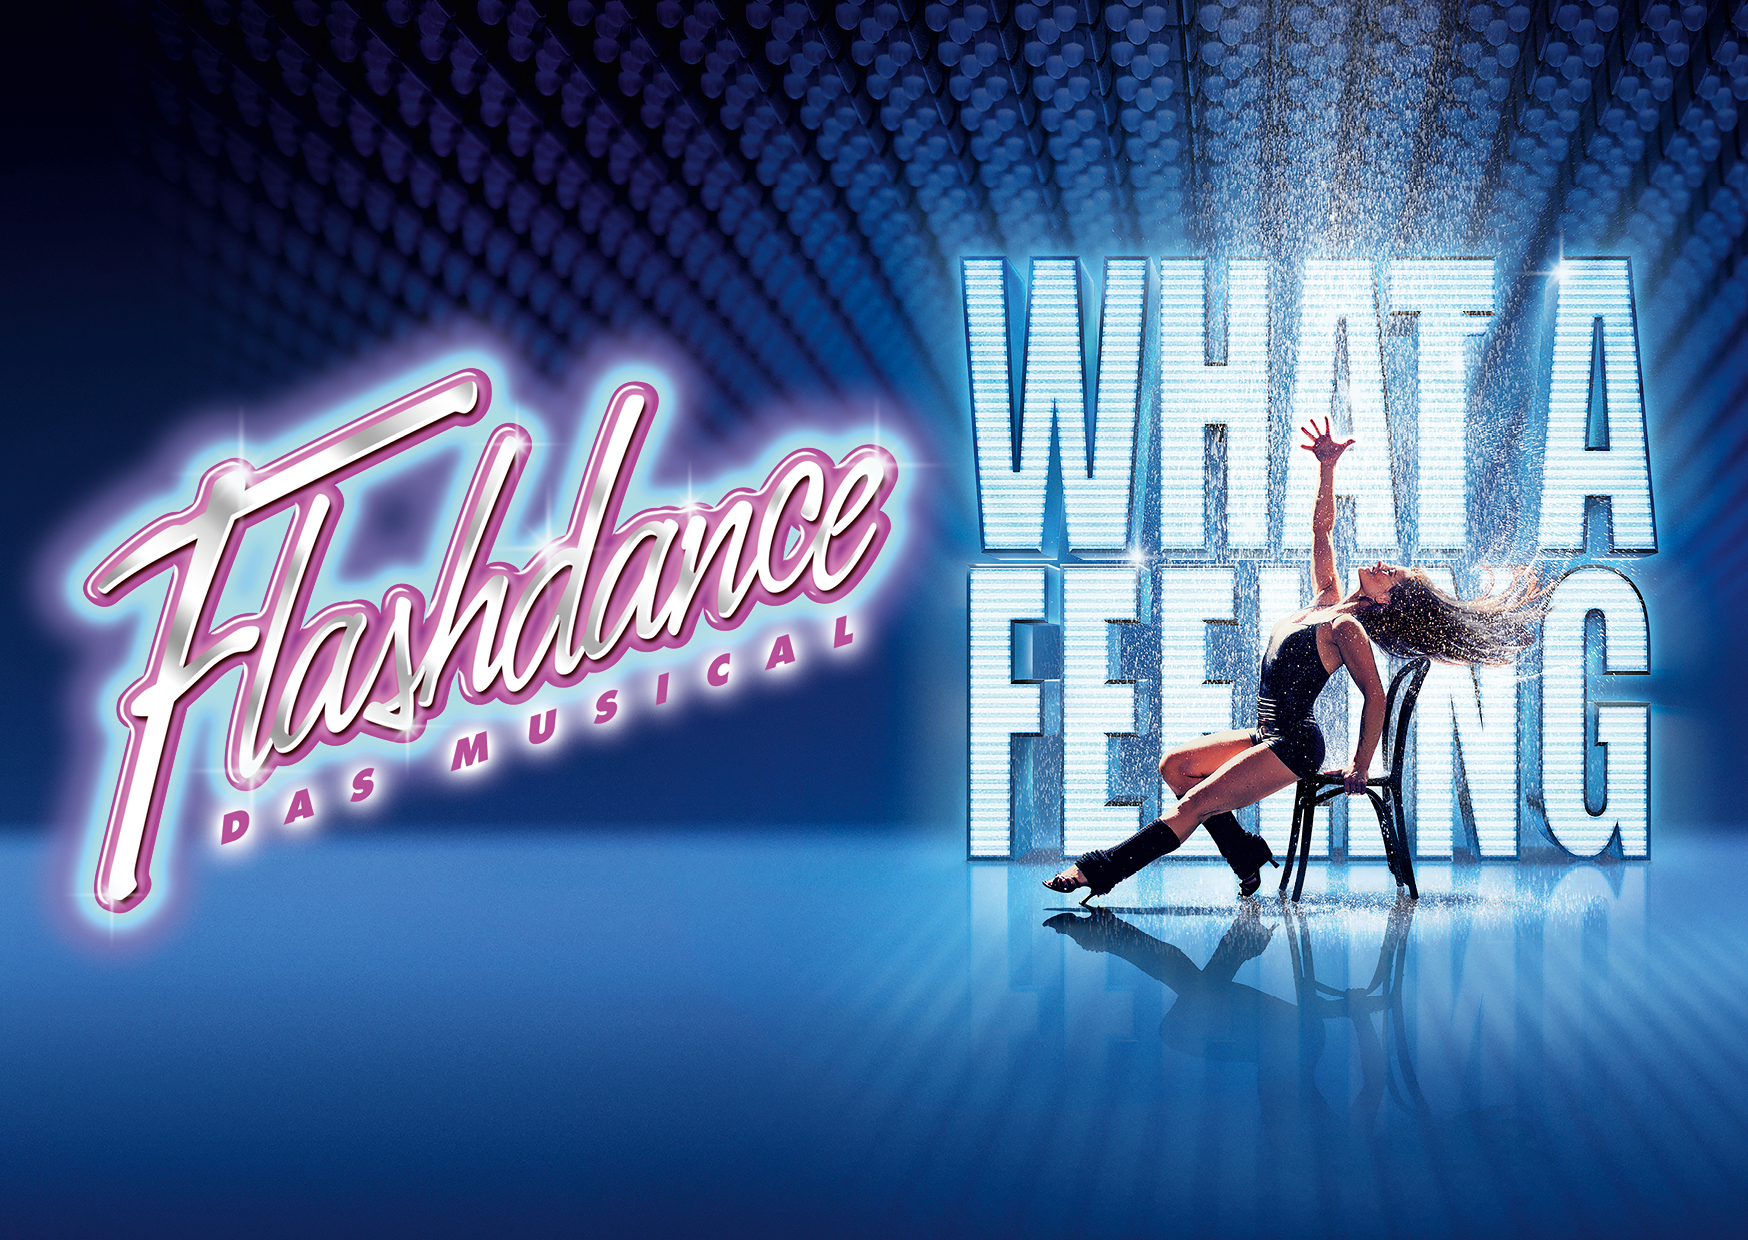 flashdance-das-musical-keyvsiual-quer